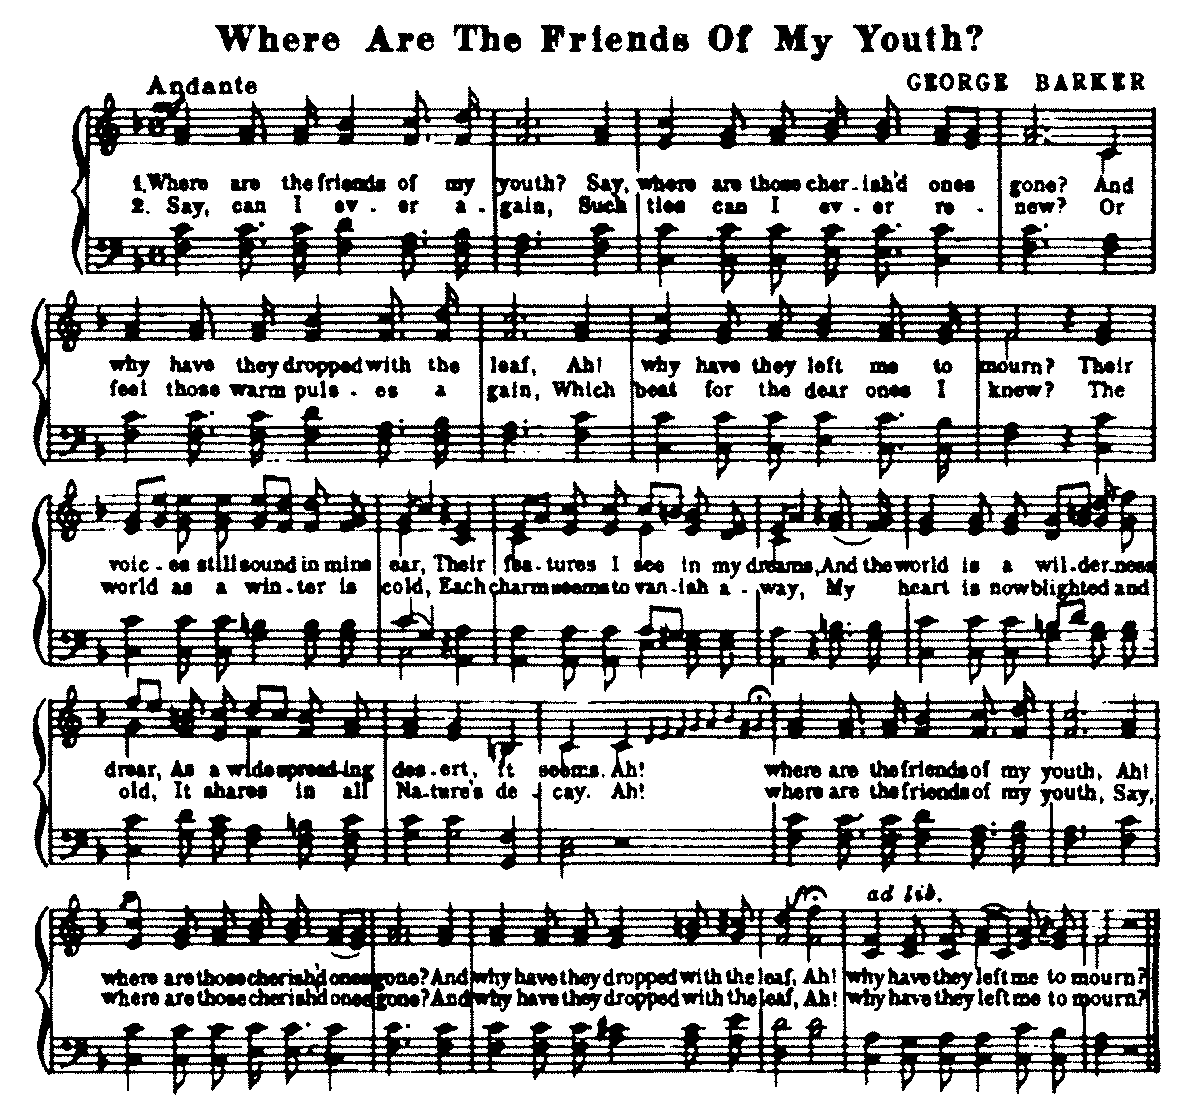 PMLP512287-Barker Where are the friends of my youth (choir).pdf